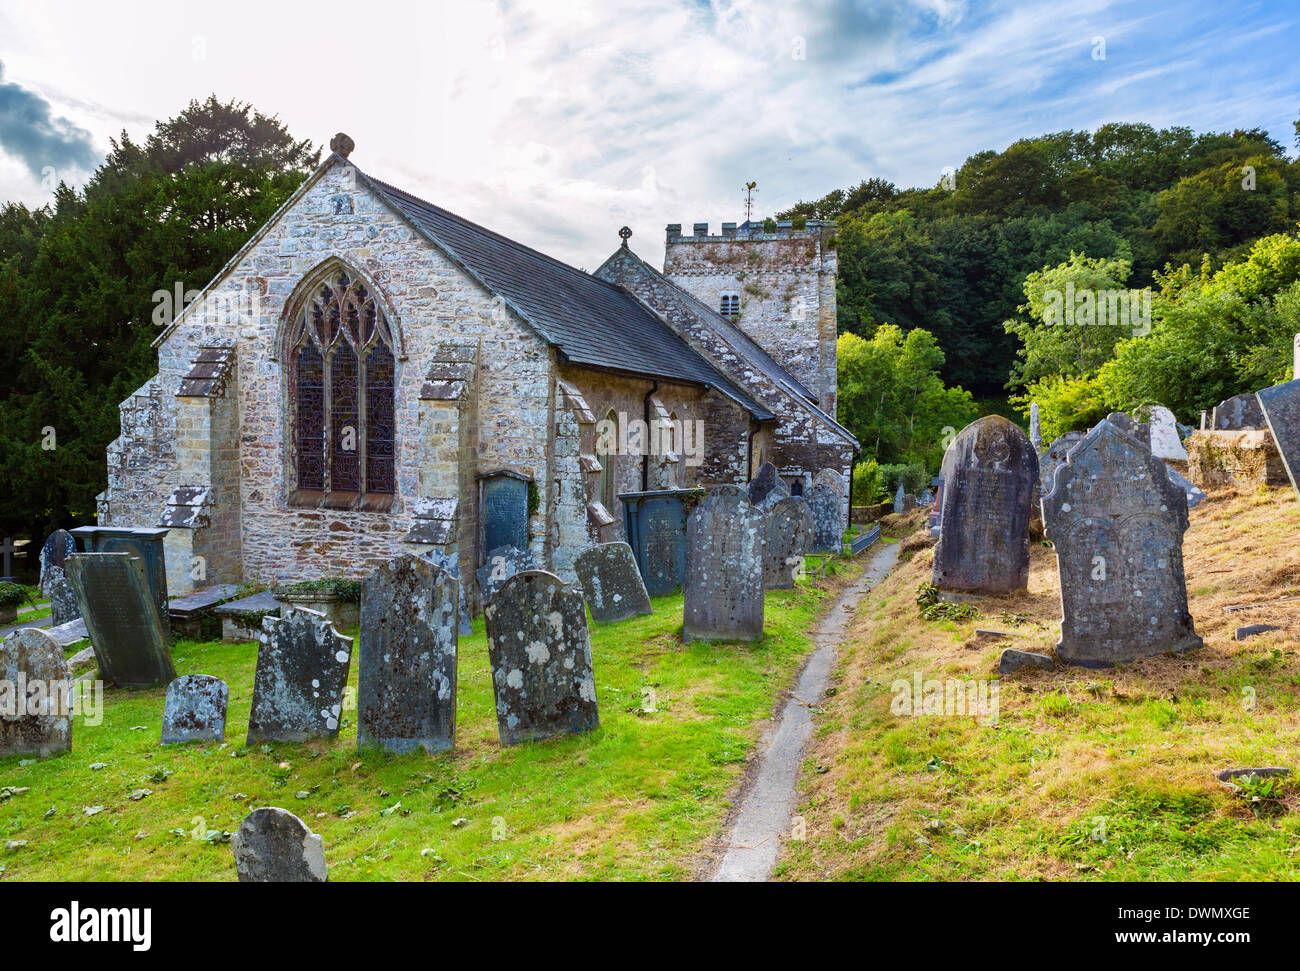 The churchyard of St Brynach Church, Nevern, Pembrokeshire, West Wales, UK - Stock Image